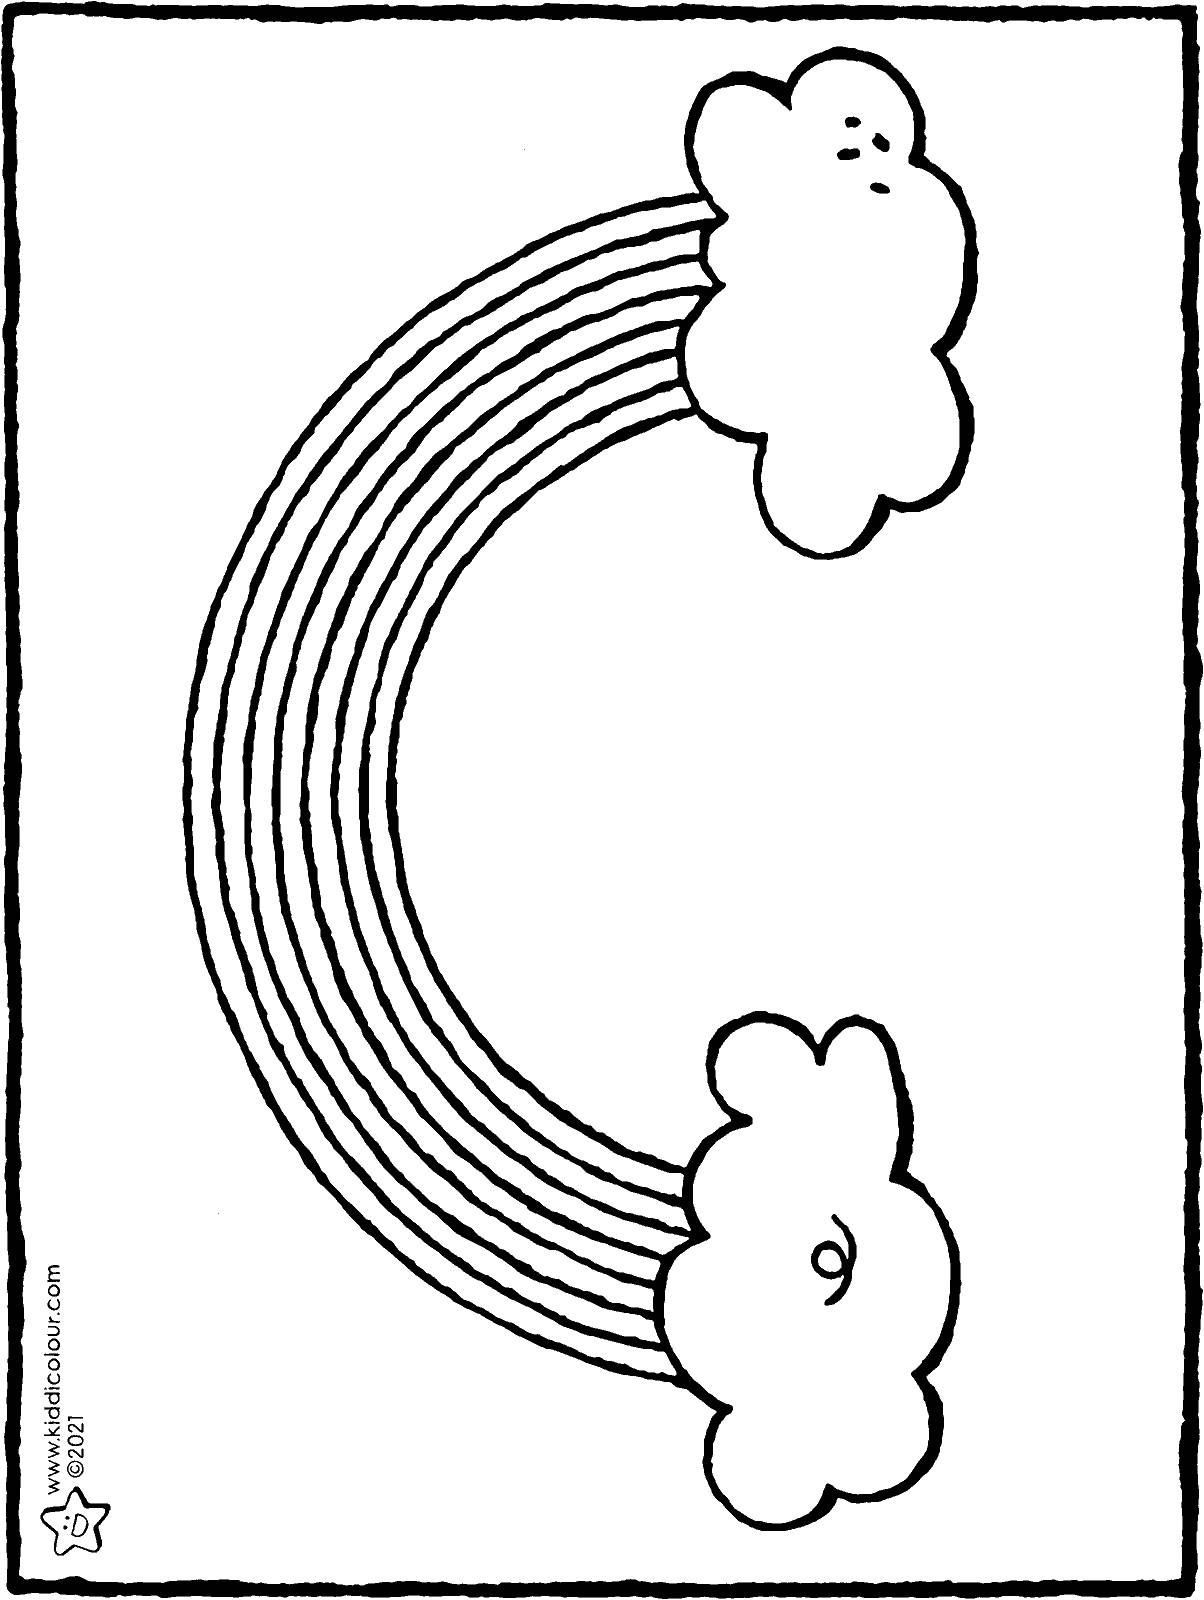 rainbow colouring page drawing picture 01H